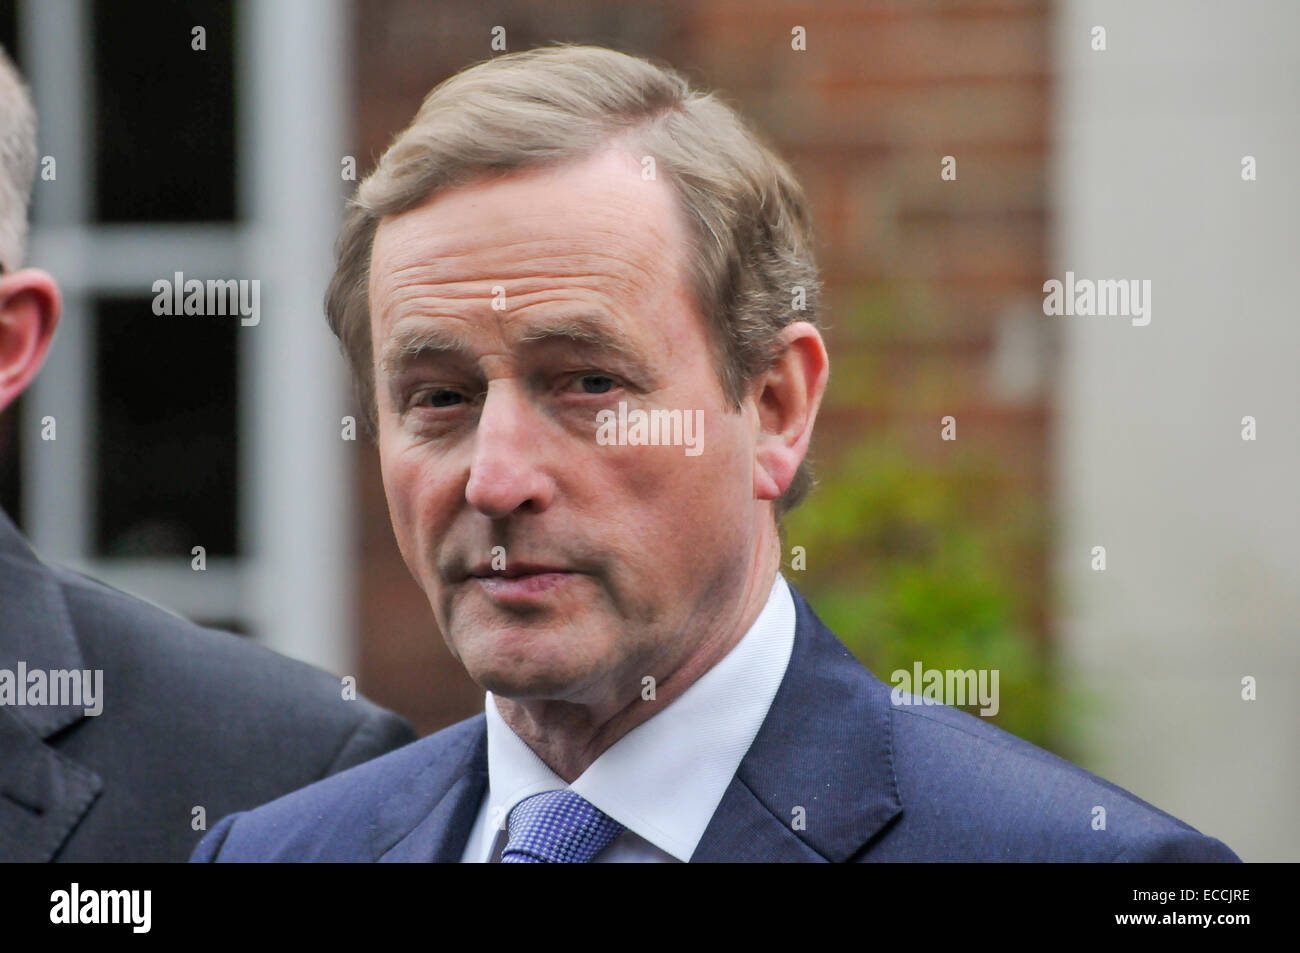 Belfast, Northern Ireland, UK. 11th December, 2014. Irish Taoiseach Enda Kenny gives a brief statement to the media - Stock Image